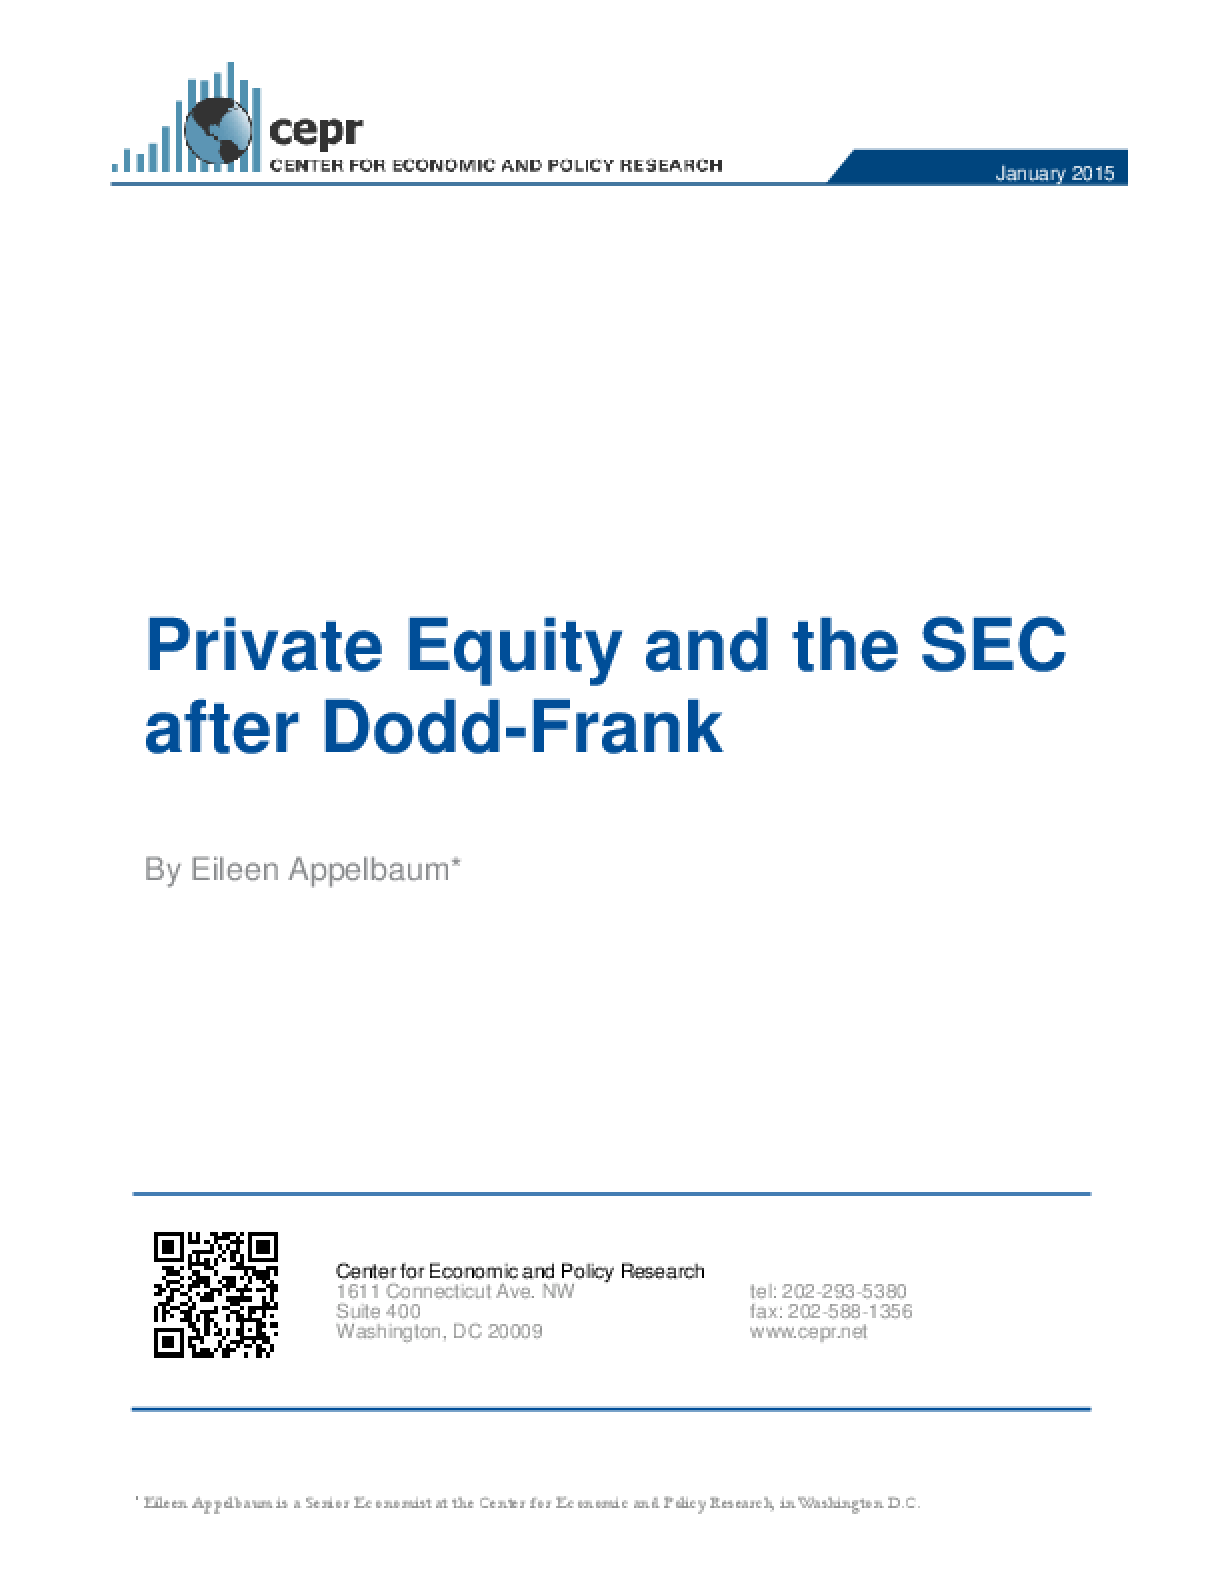 Private Equity and the SEC after Dodd-Frank